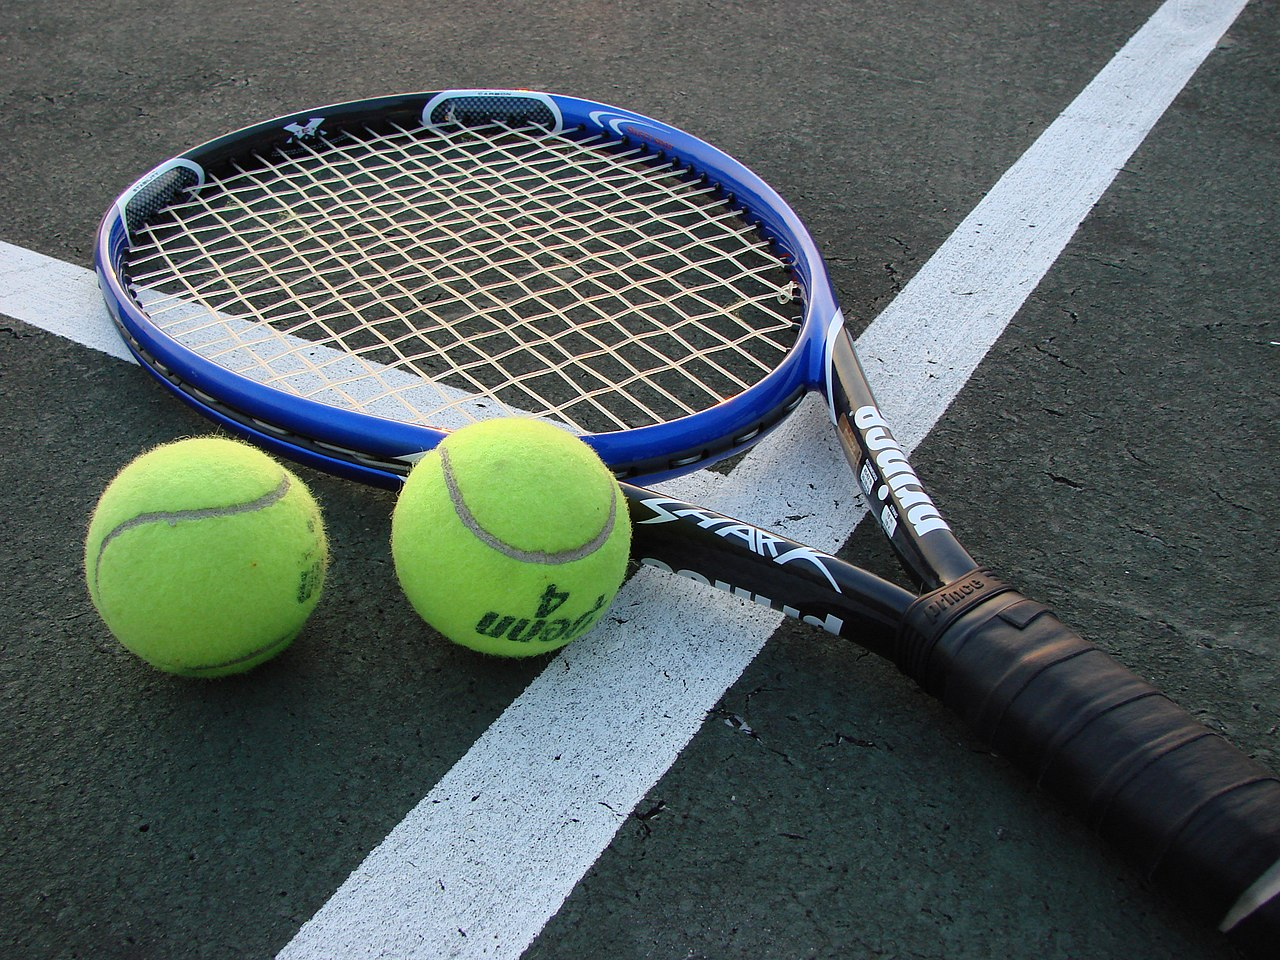 Spring Tennis Offerings in Pittsboro Parks